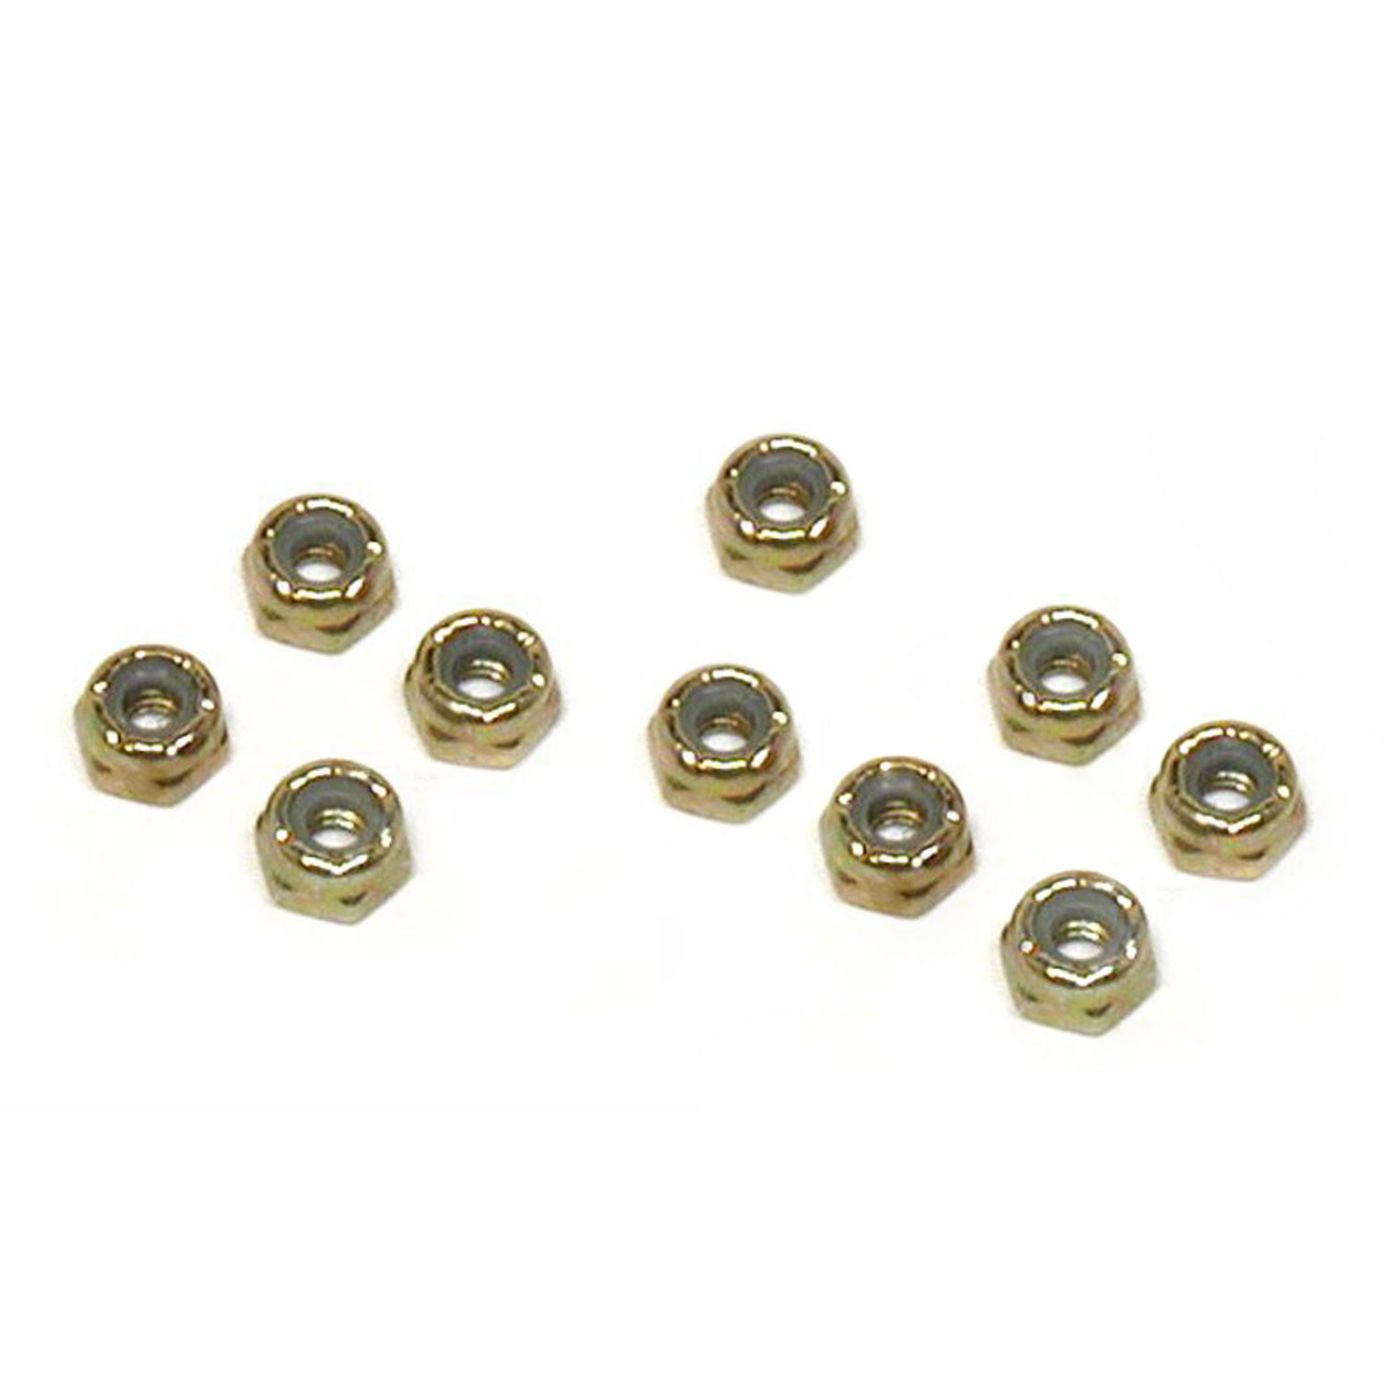 Losi 5-40 Locking Nuts, steel